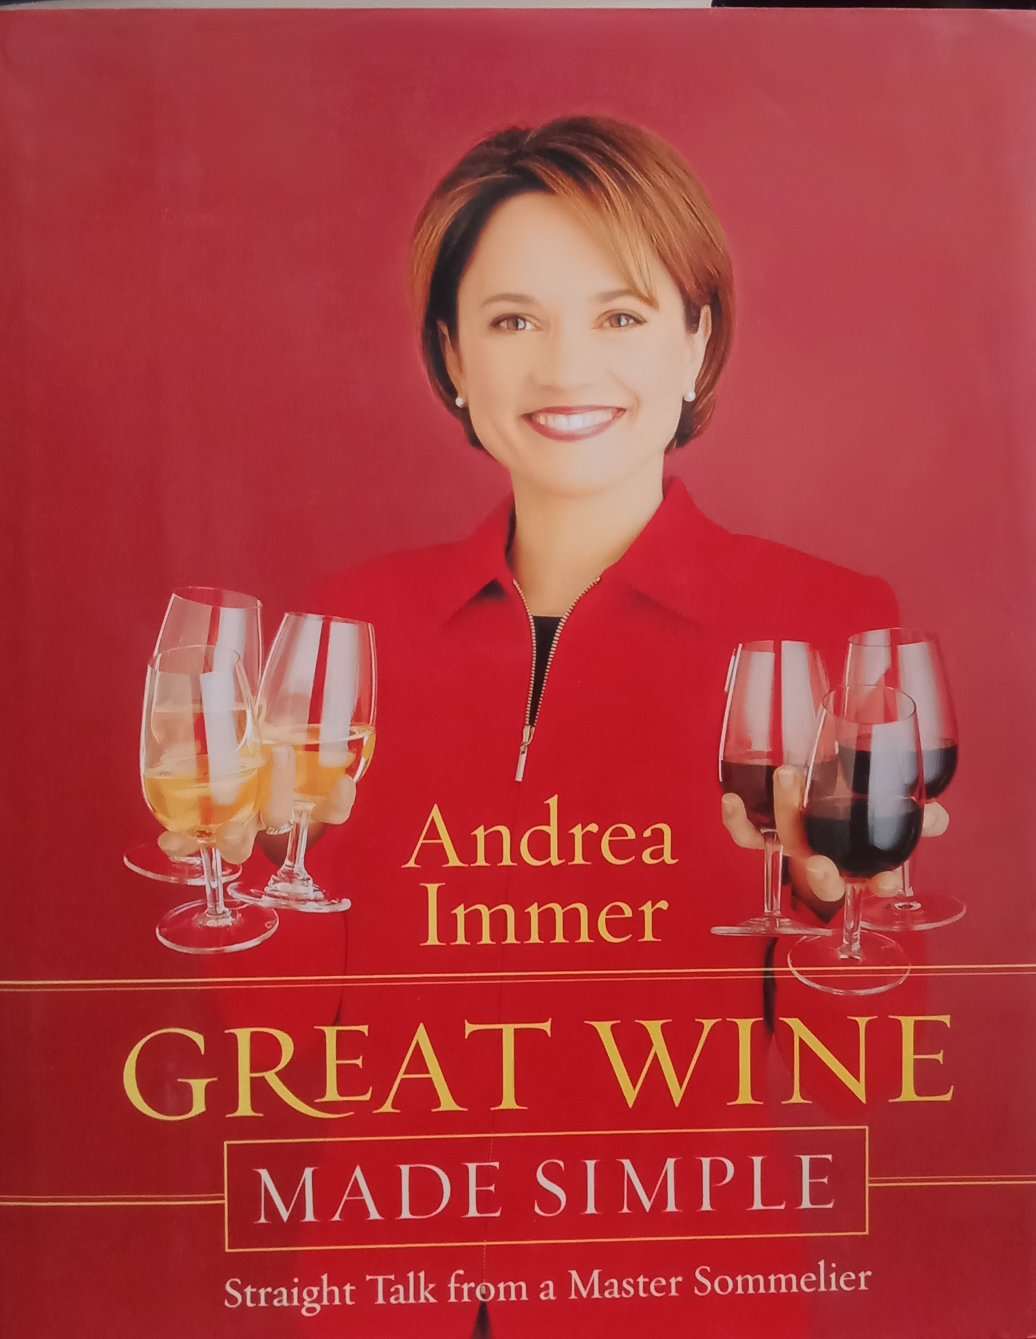 Great Wine made simple By Andrea Immer